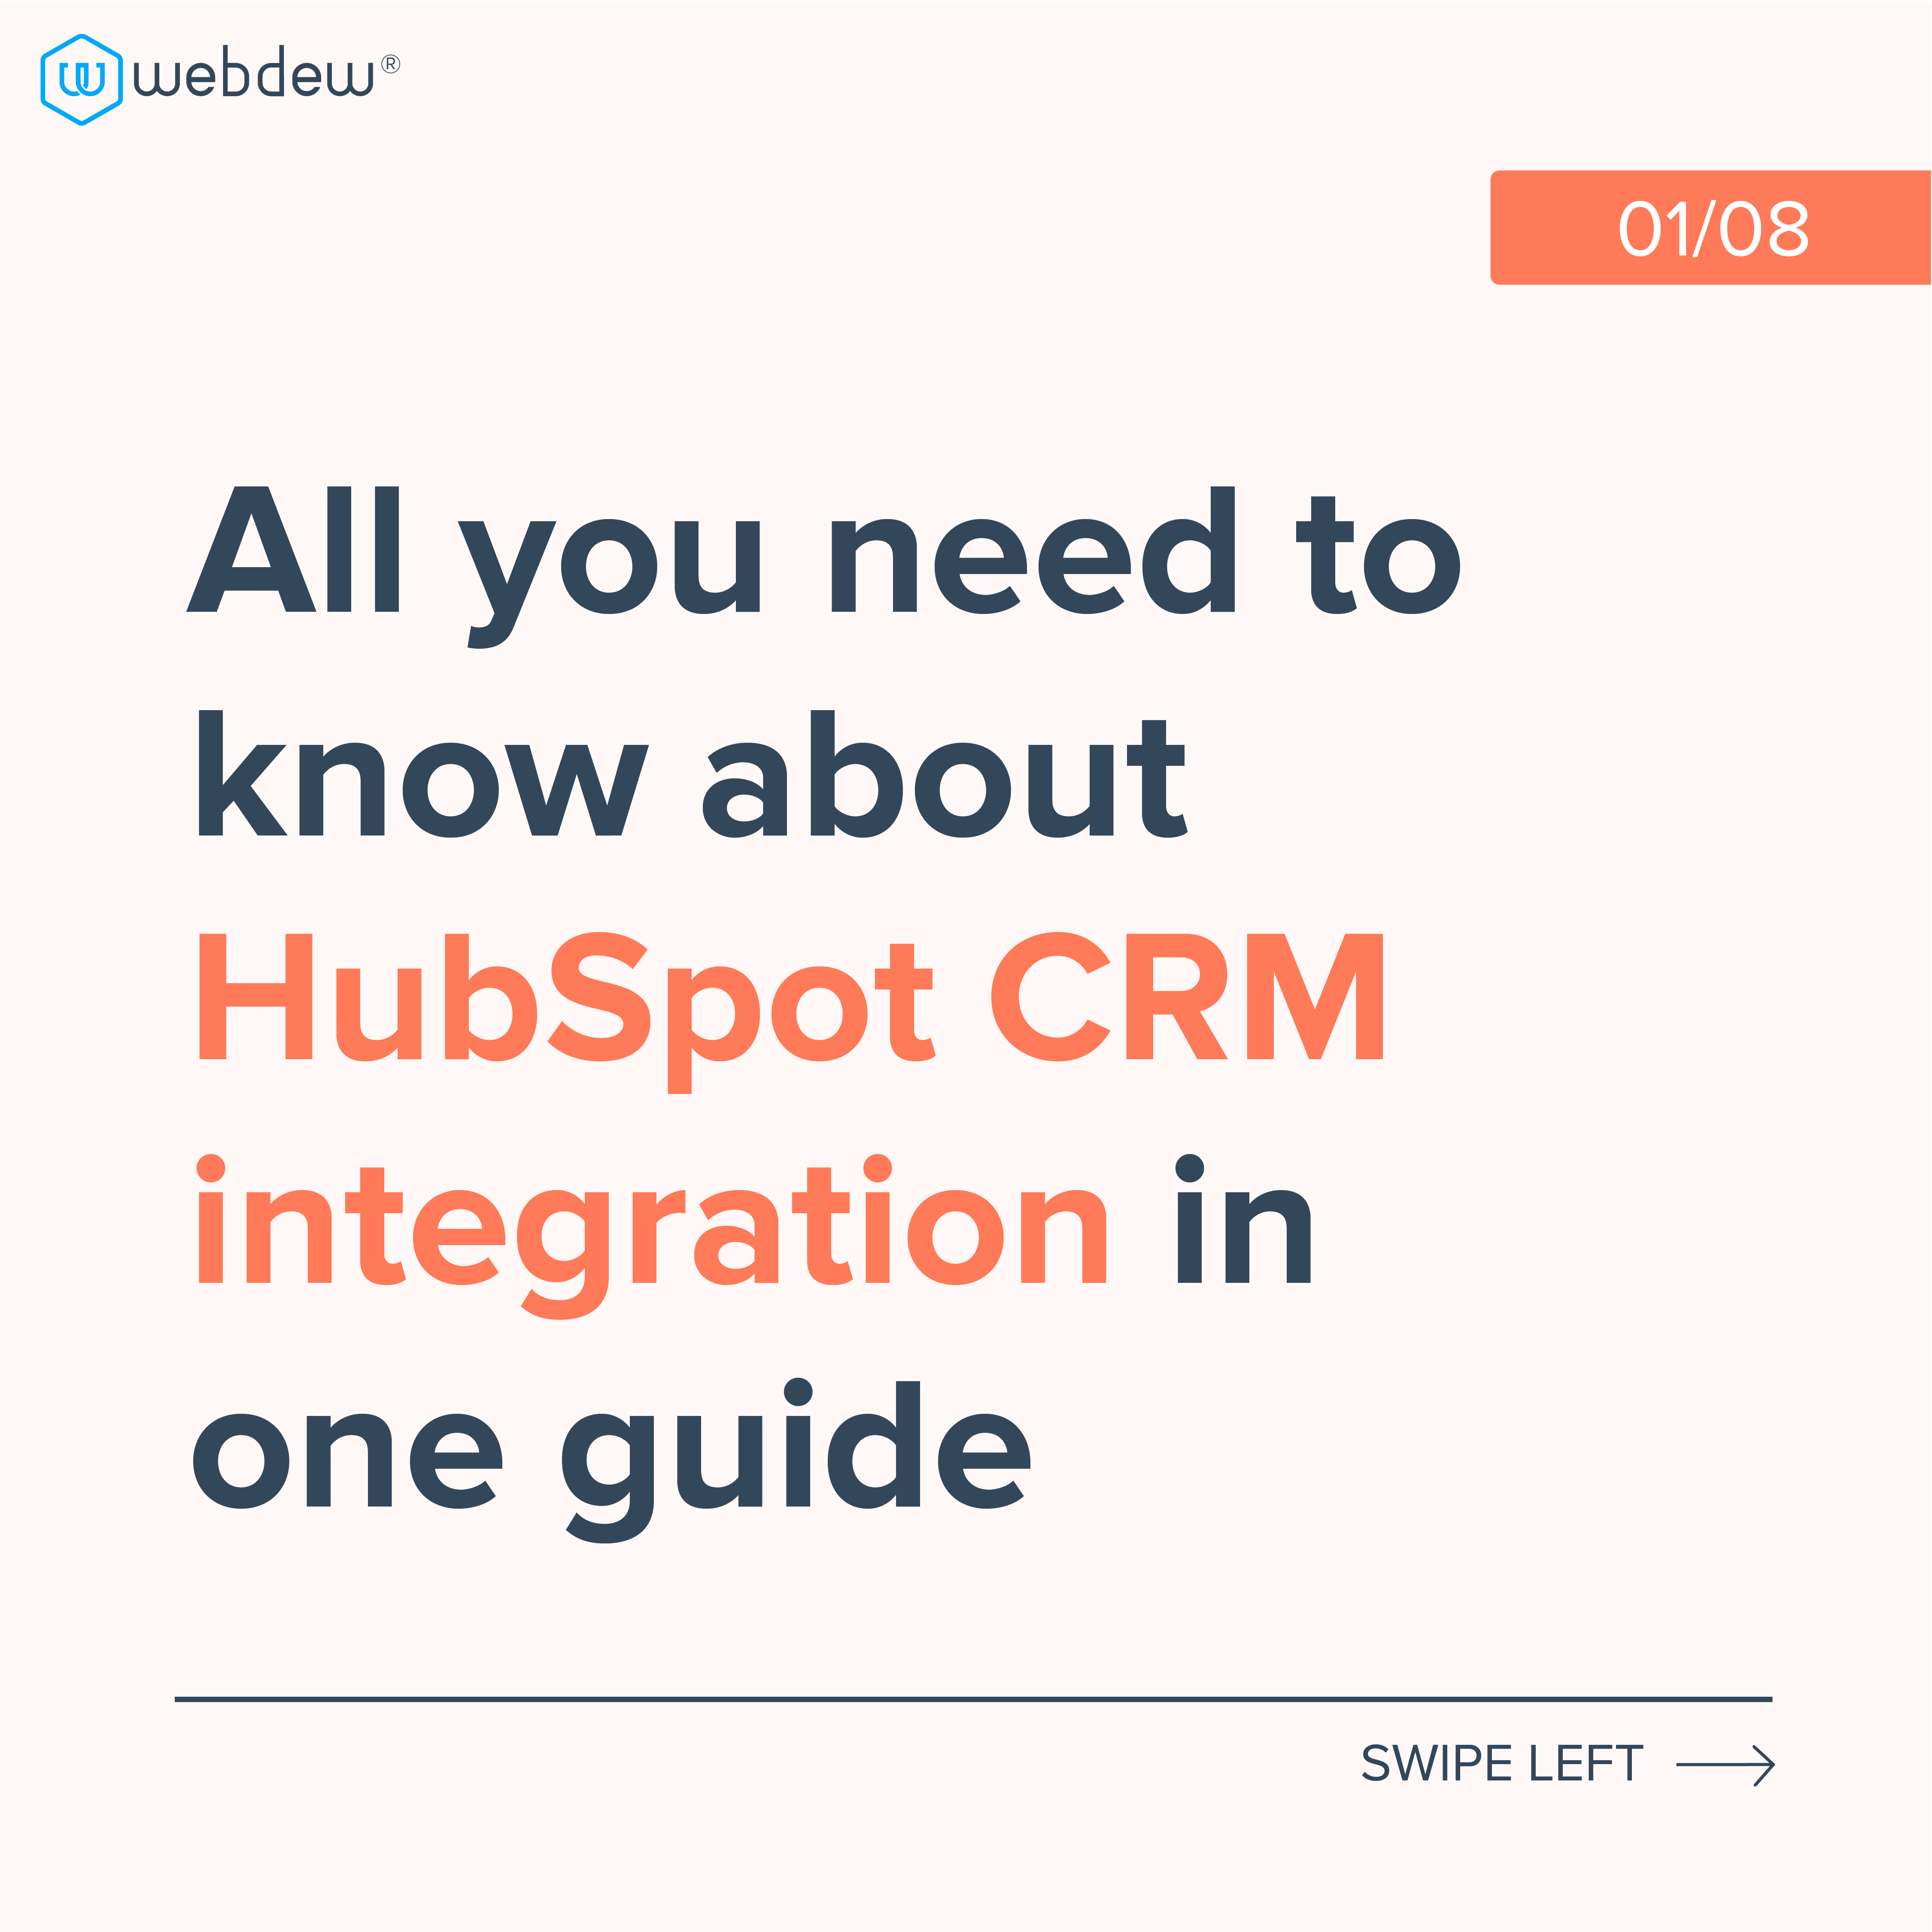 all you need to know about hubspot CRM integration in one guide-01